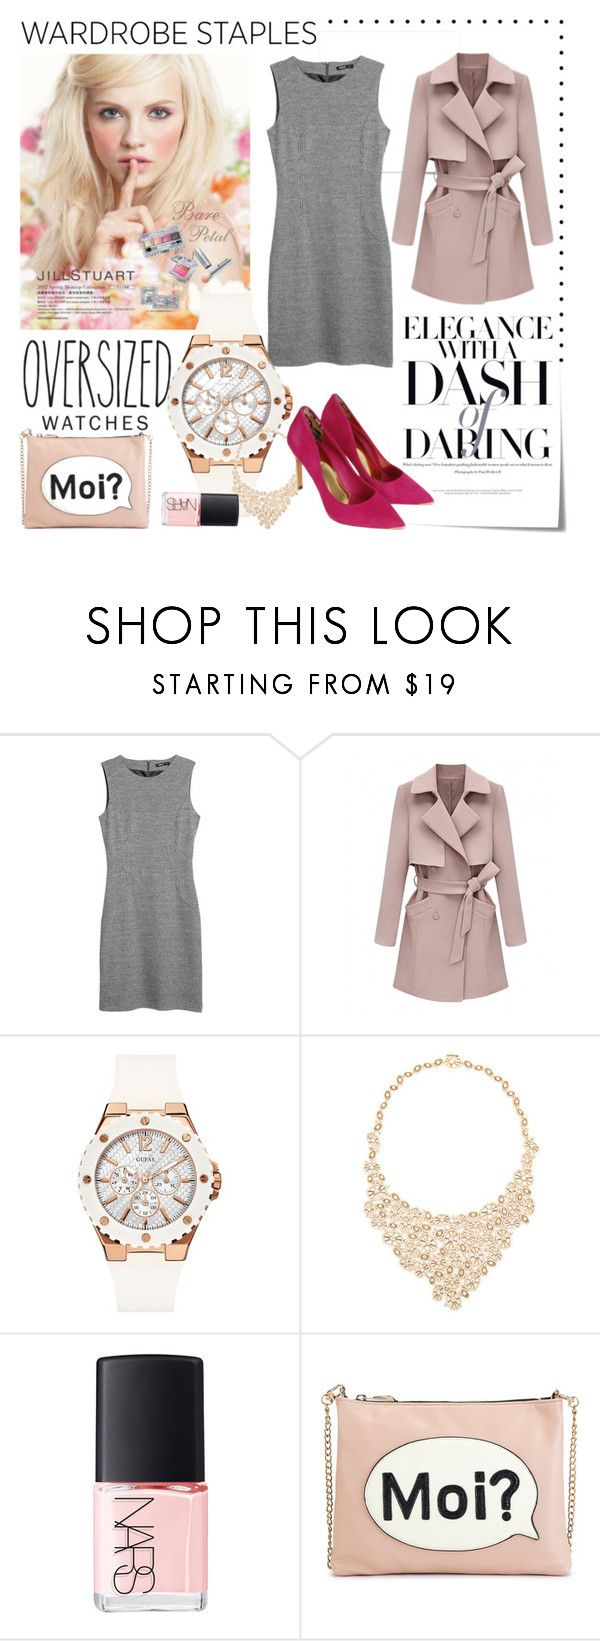 """""""Wardrobe Staple: Oversized Watch"""" by lushxoxo ❤ liked on Polyvore featuring Post-It, MANGO, Jill Stuart, GUESS, Octium, NARS Cosmetics, M&S and Ted Baker"""